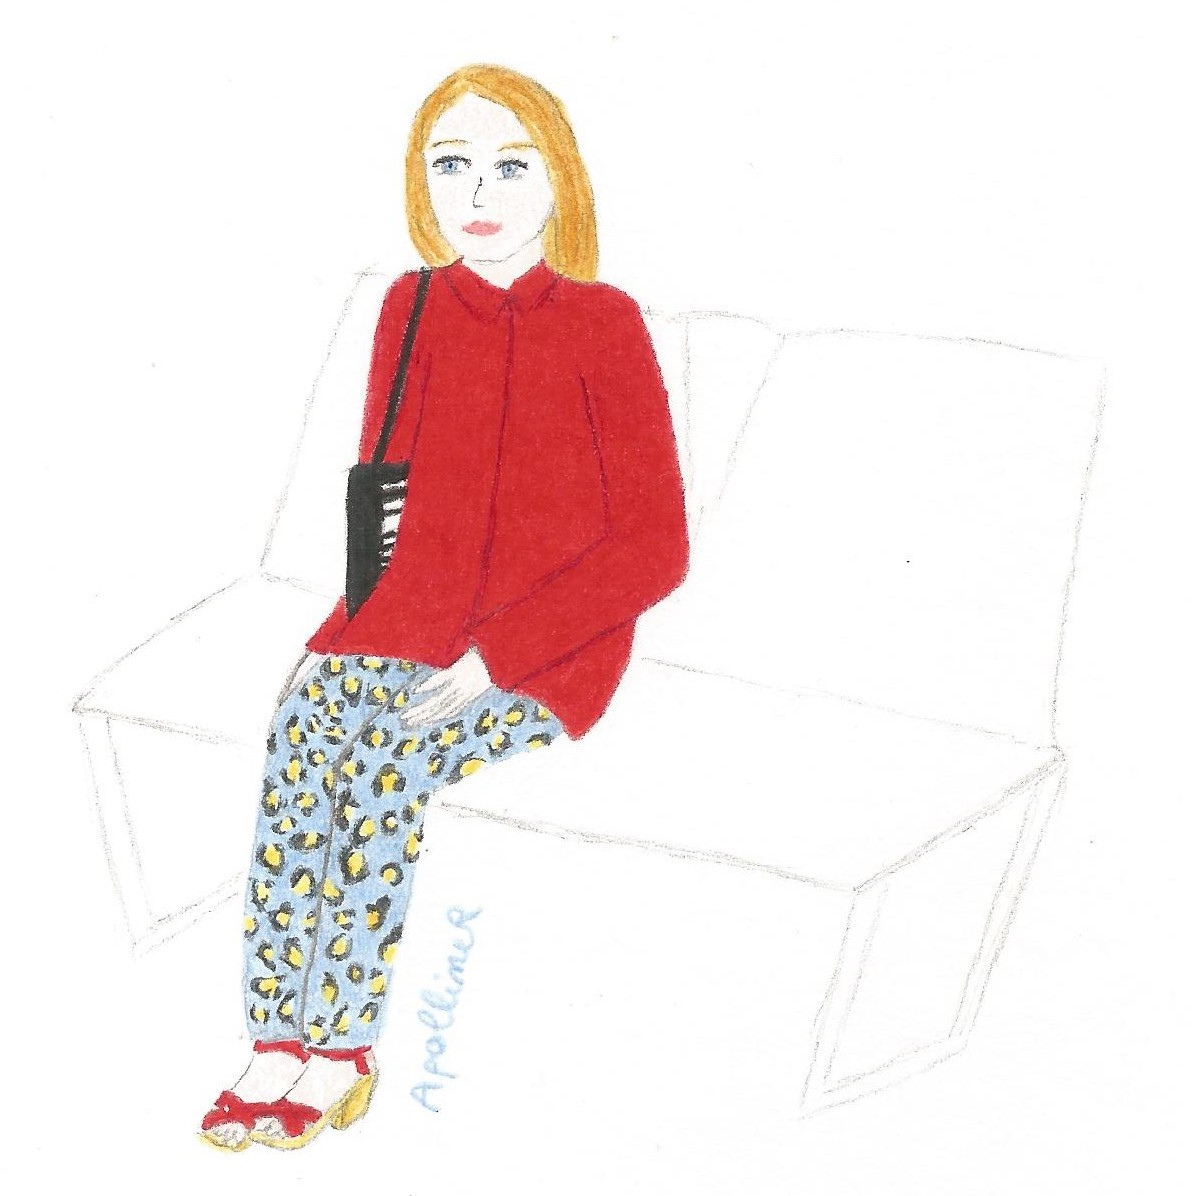 drawing of a girl wearing red peep toe clogs, a bright red jacket and blue leopard print trousers